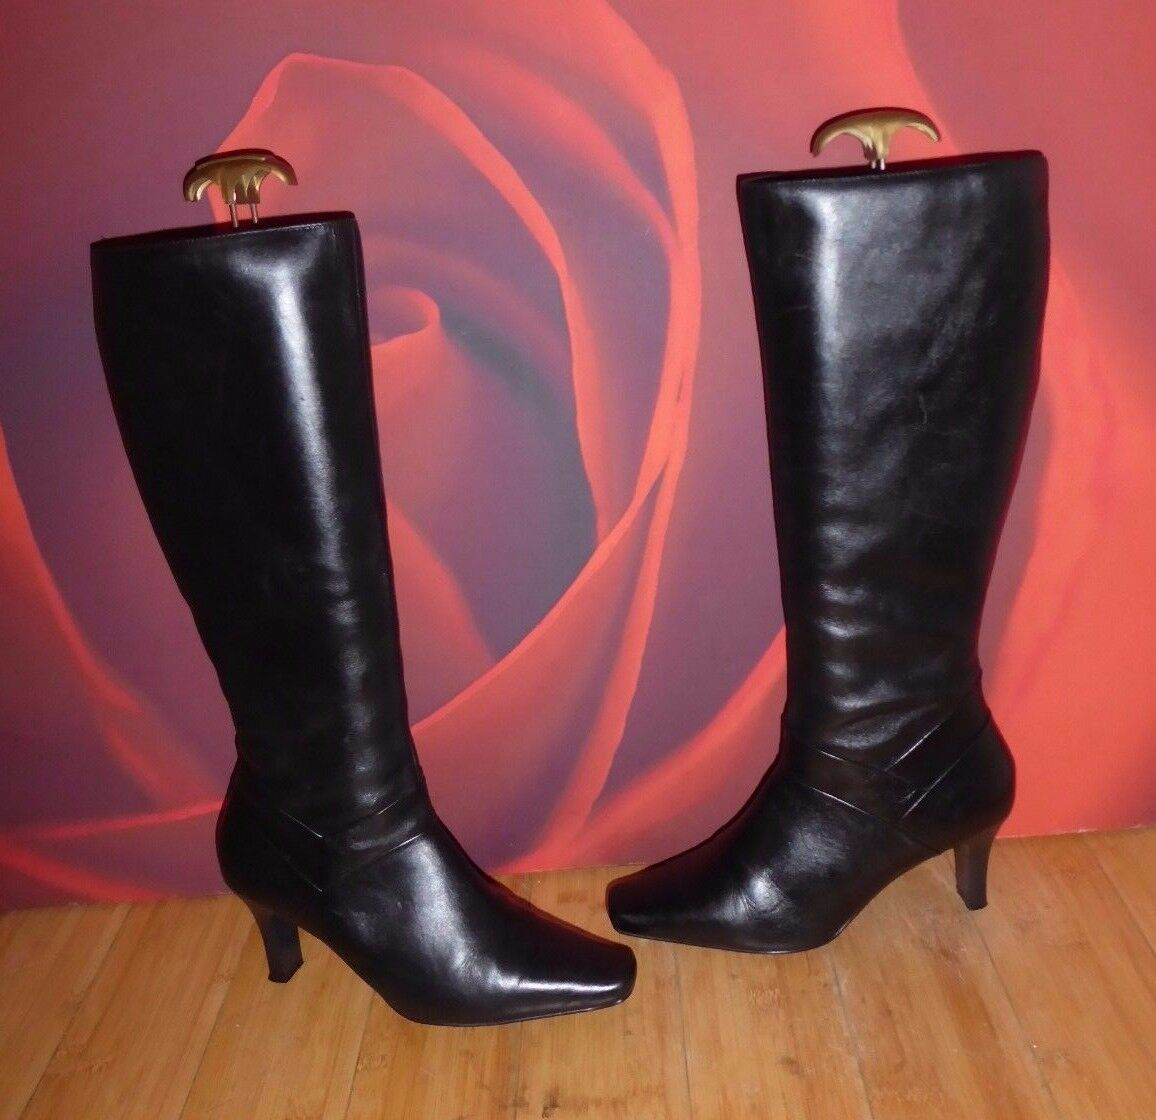 32 DgoldTHY PERKINS BLACK LEATHER  KNEE HEEL BOOTS EU 39 UK 6